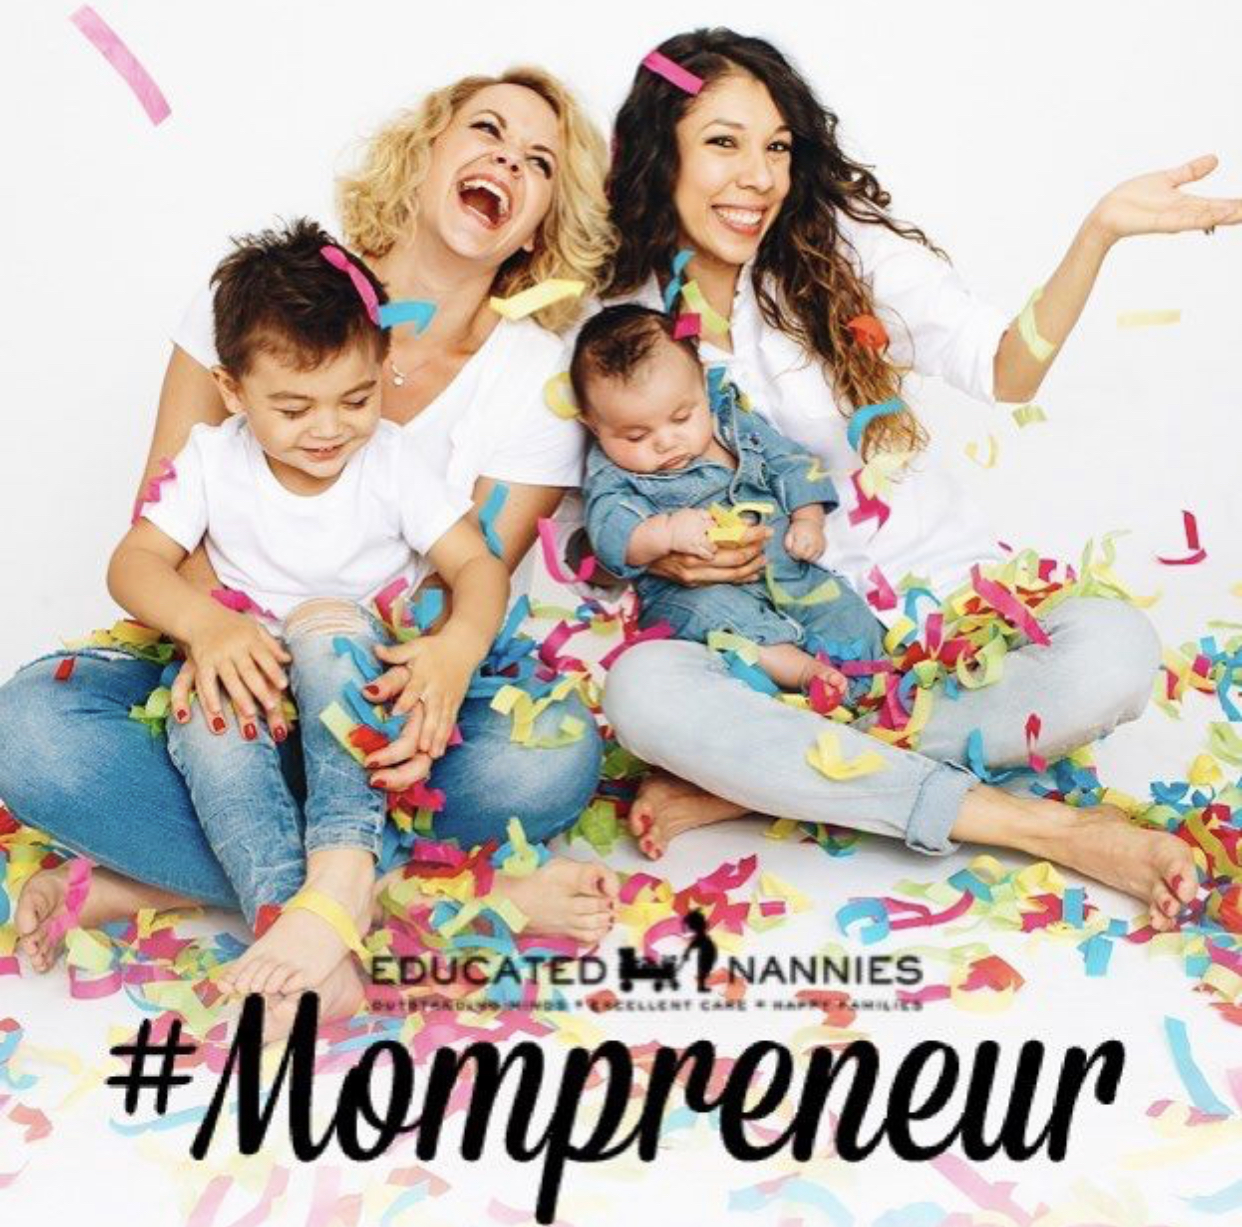 Named #mompreneurs by Educated Nannies -